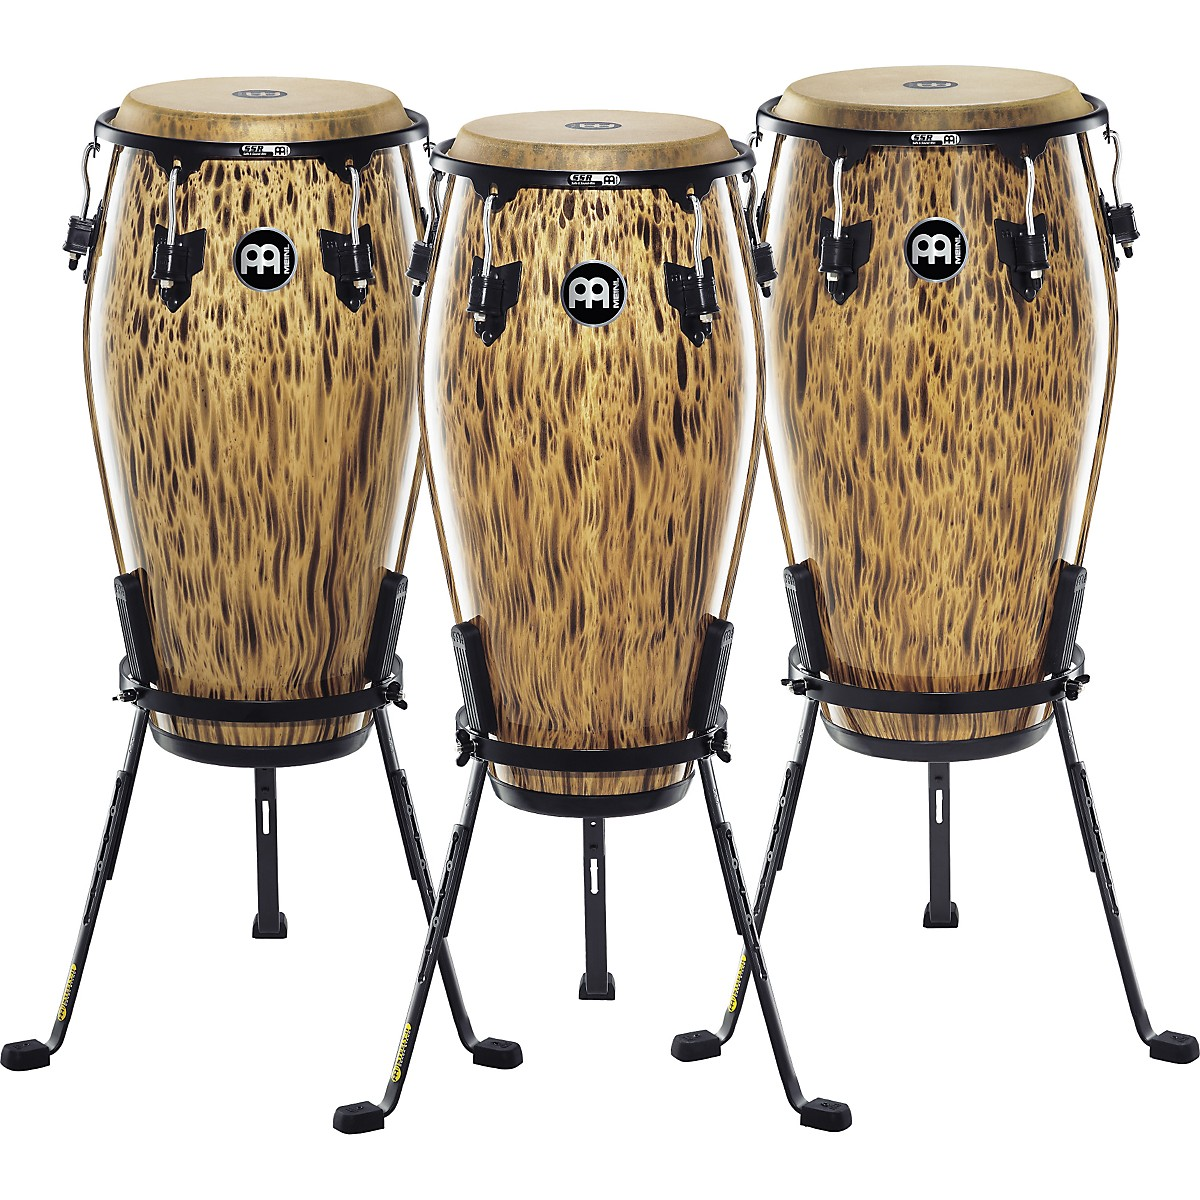 Meinl 30th Anniversary Edition Marathon Classic Series Conga with Steely II Stand